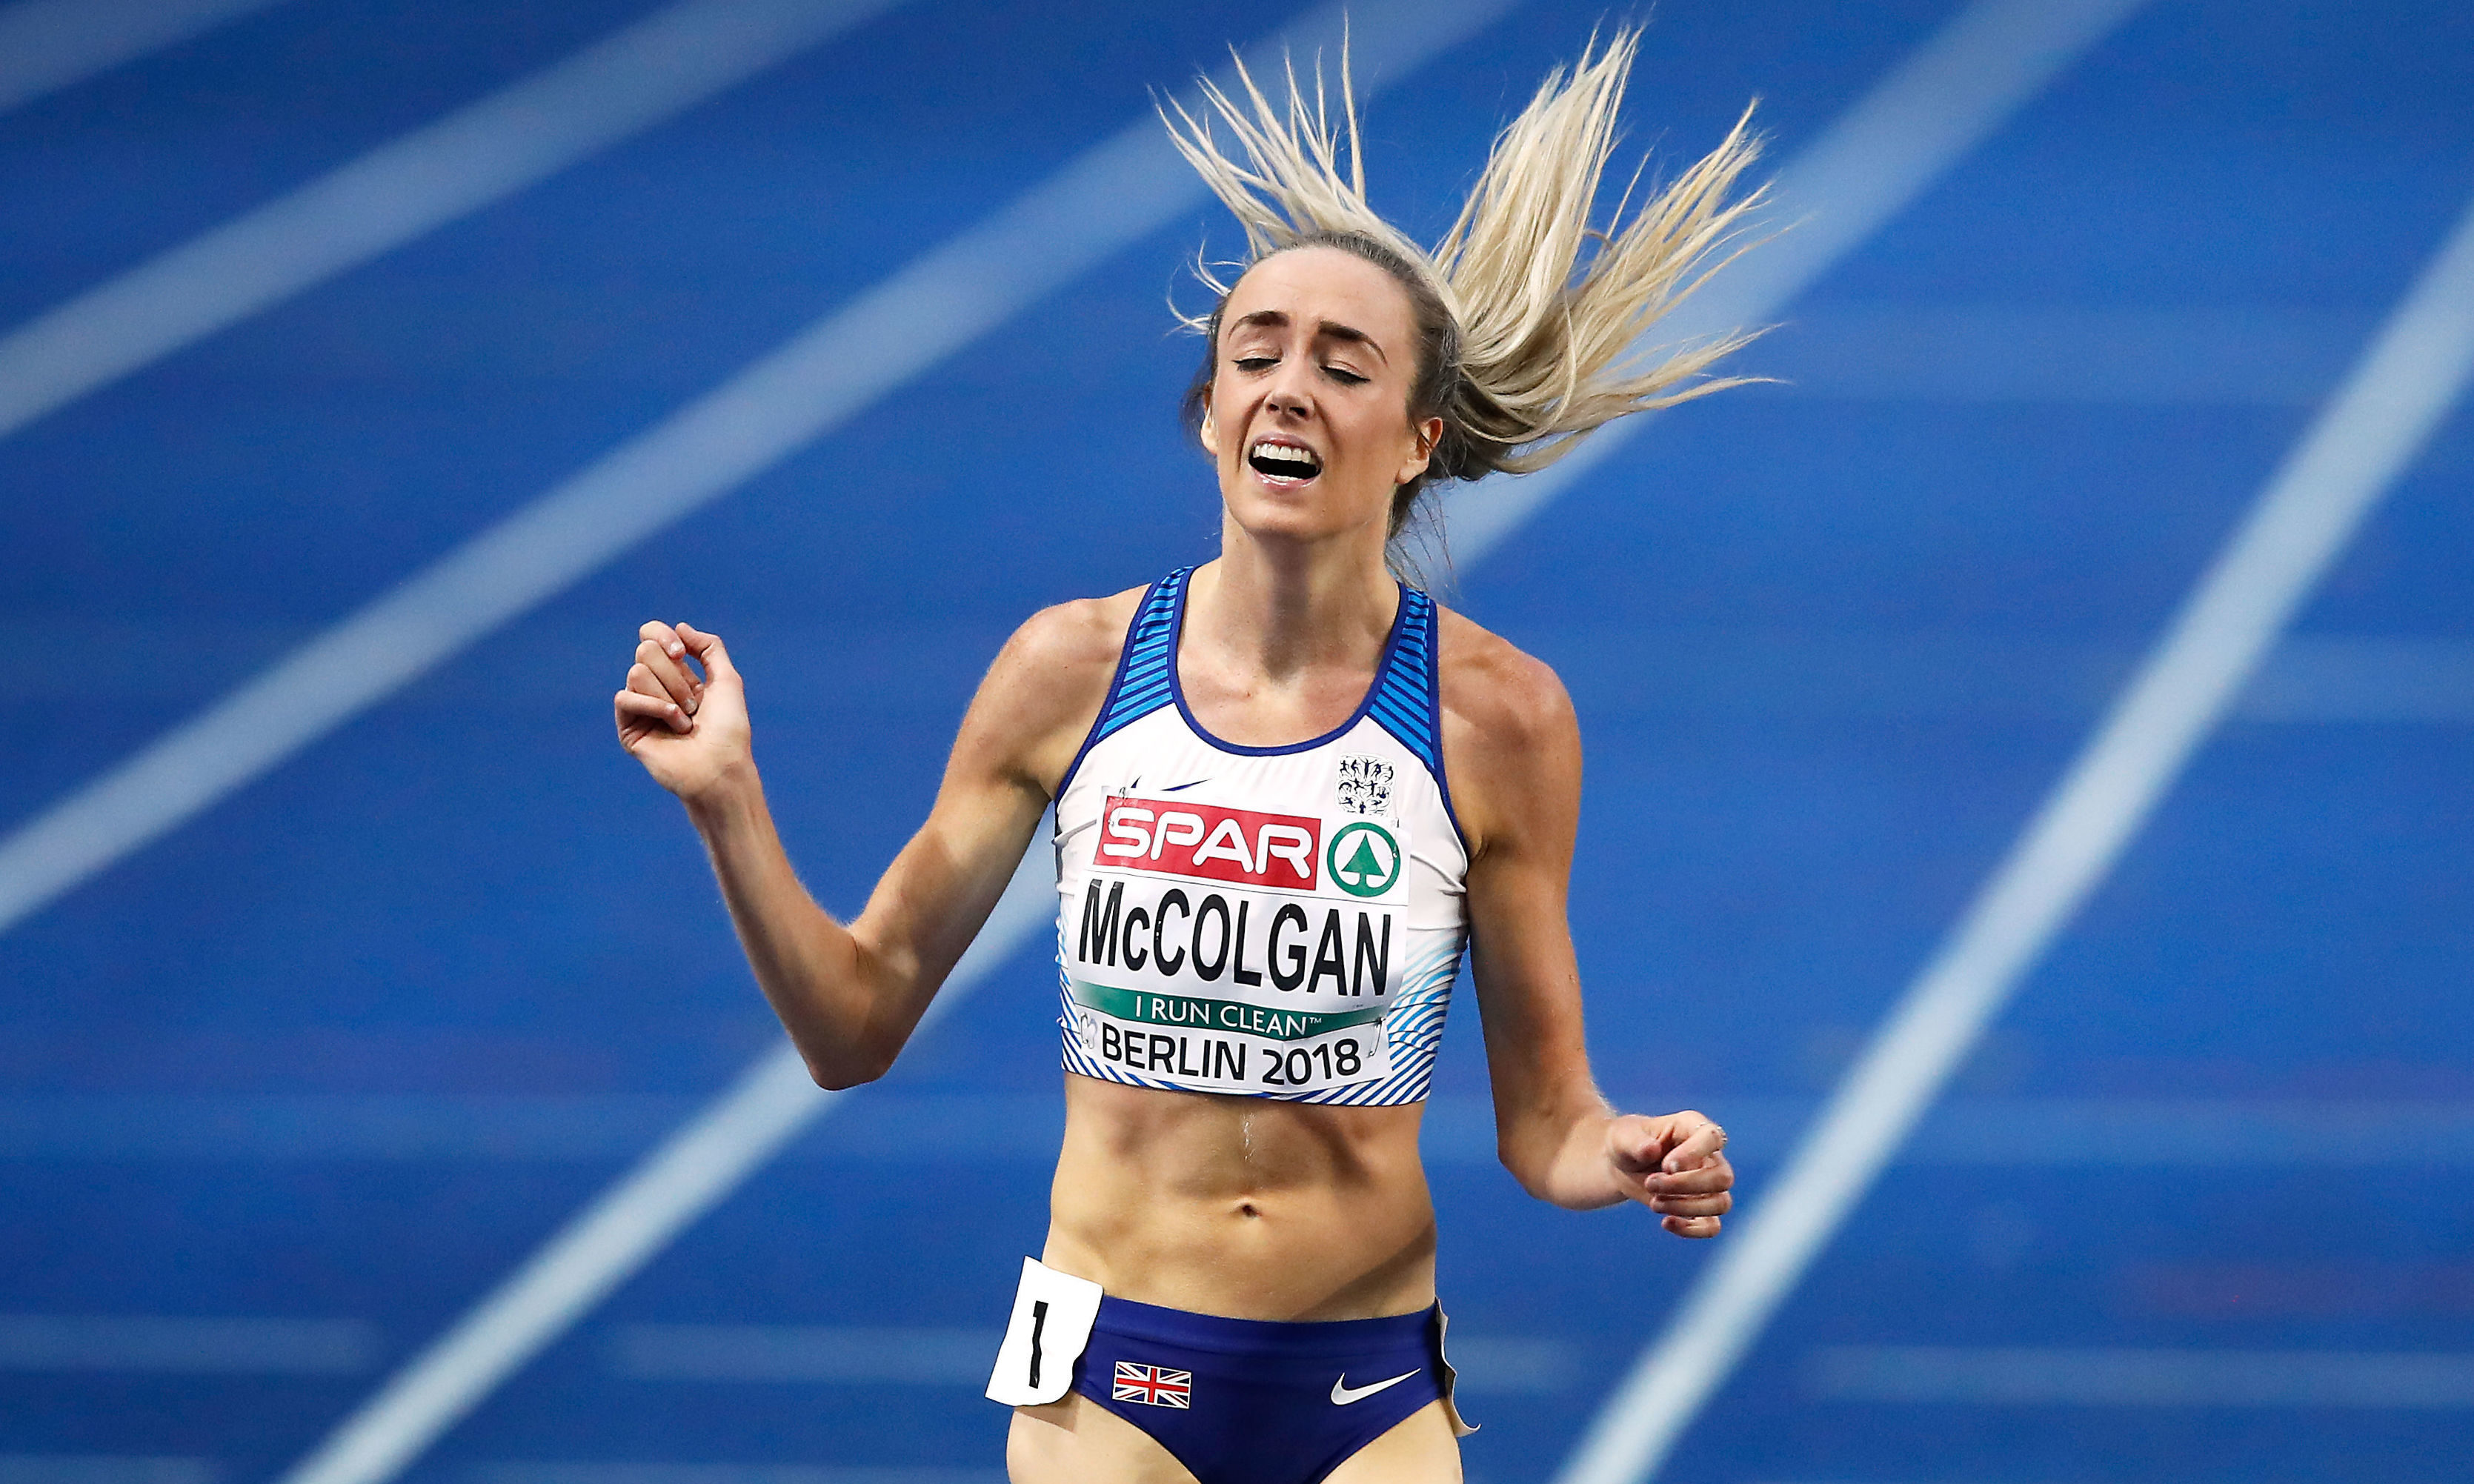 Eilish McColgan celebrates after winning silver at the European Championships in 2018.